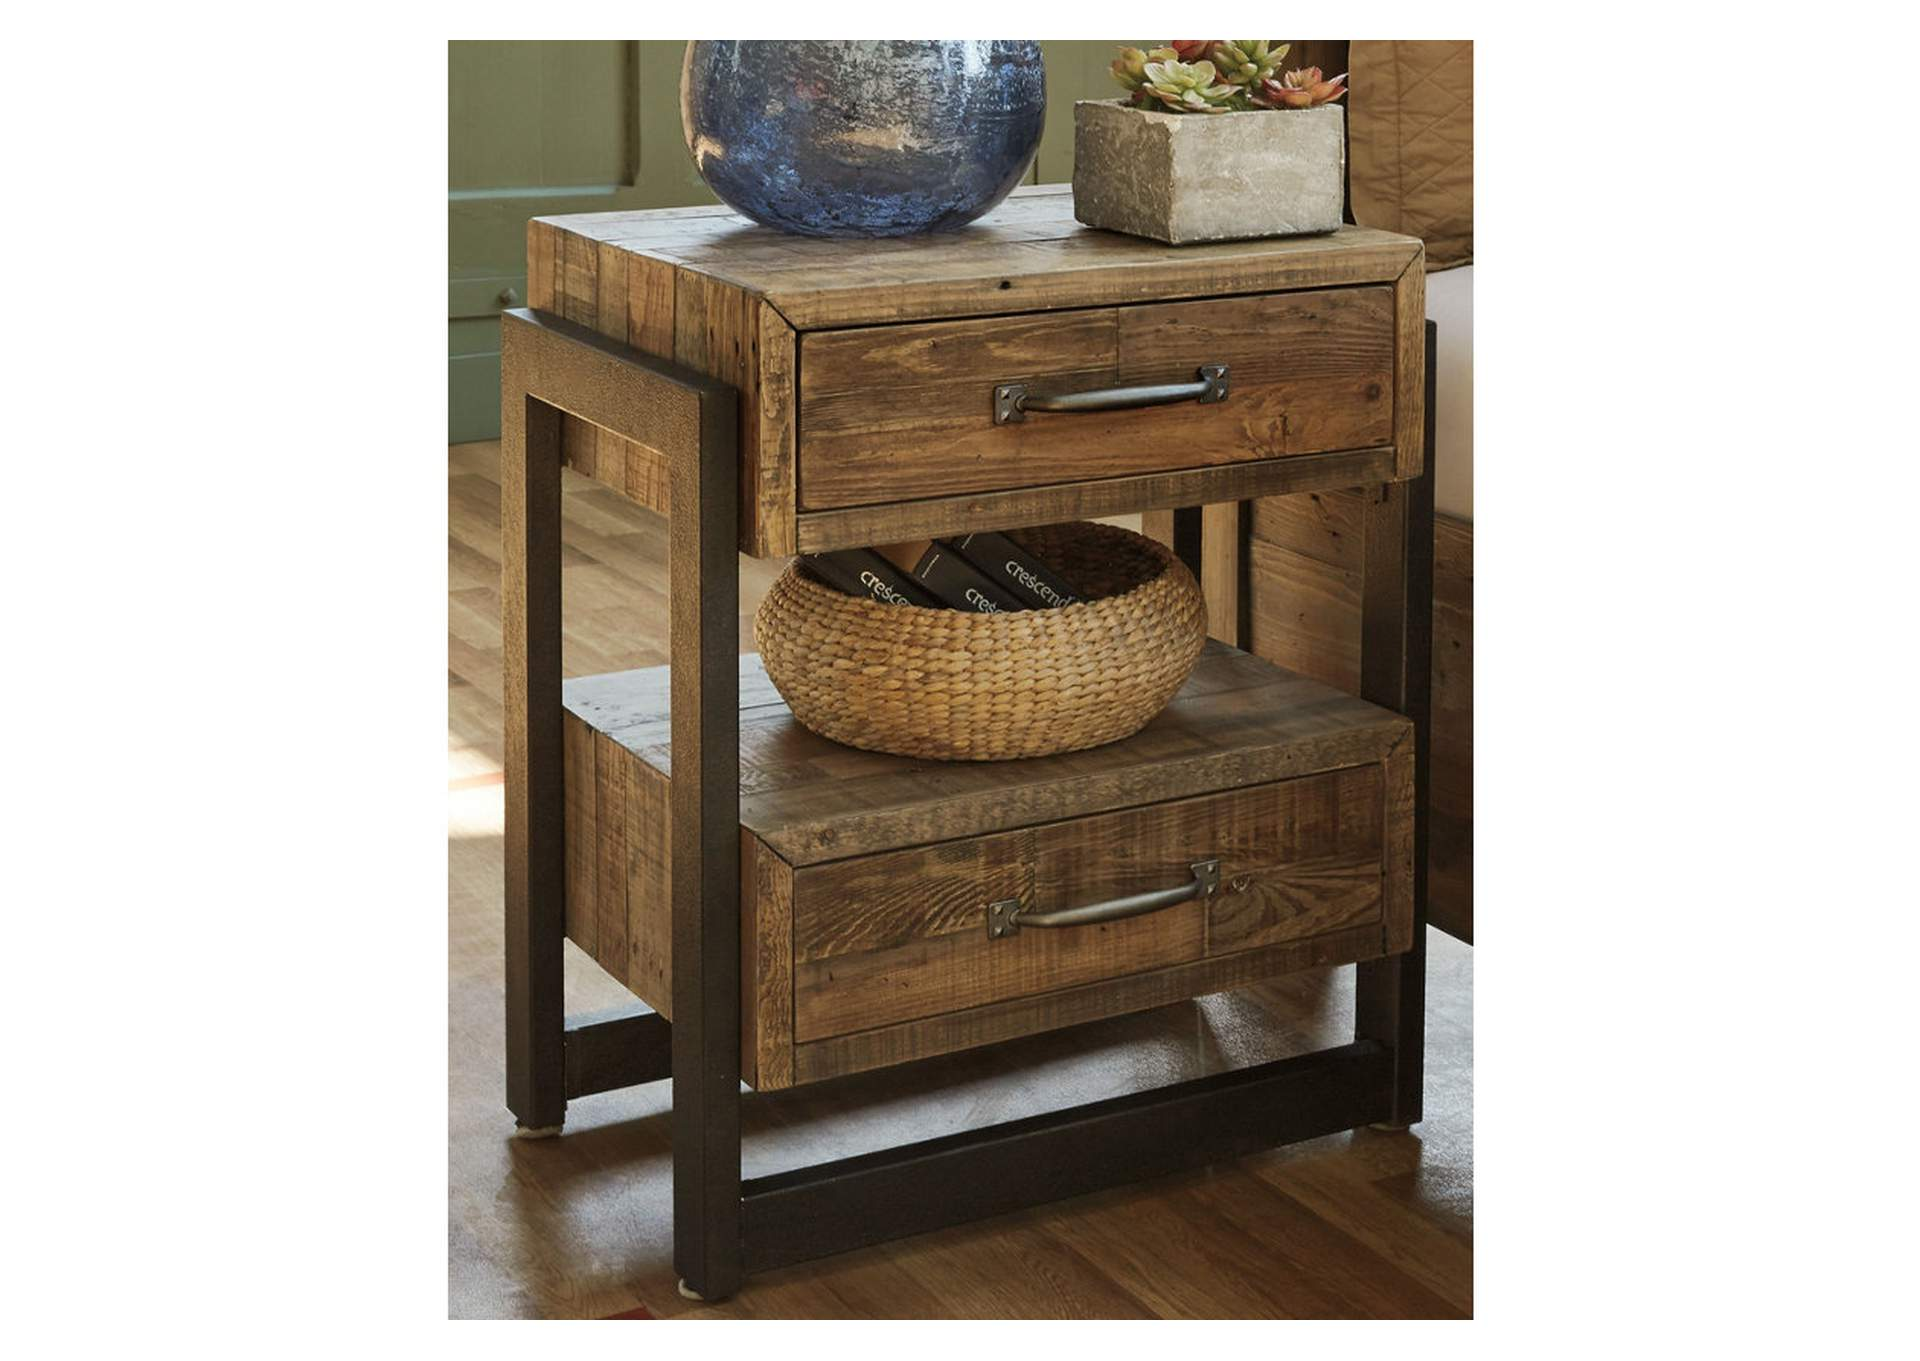 Sommerford Brown Two Drawer Nightstand,Direct To Consumer Express